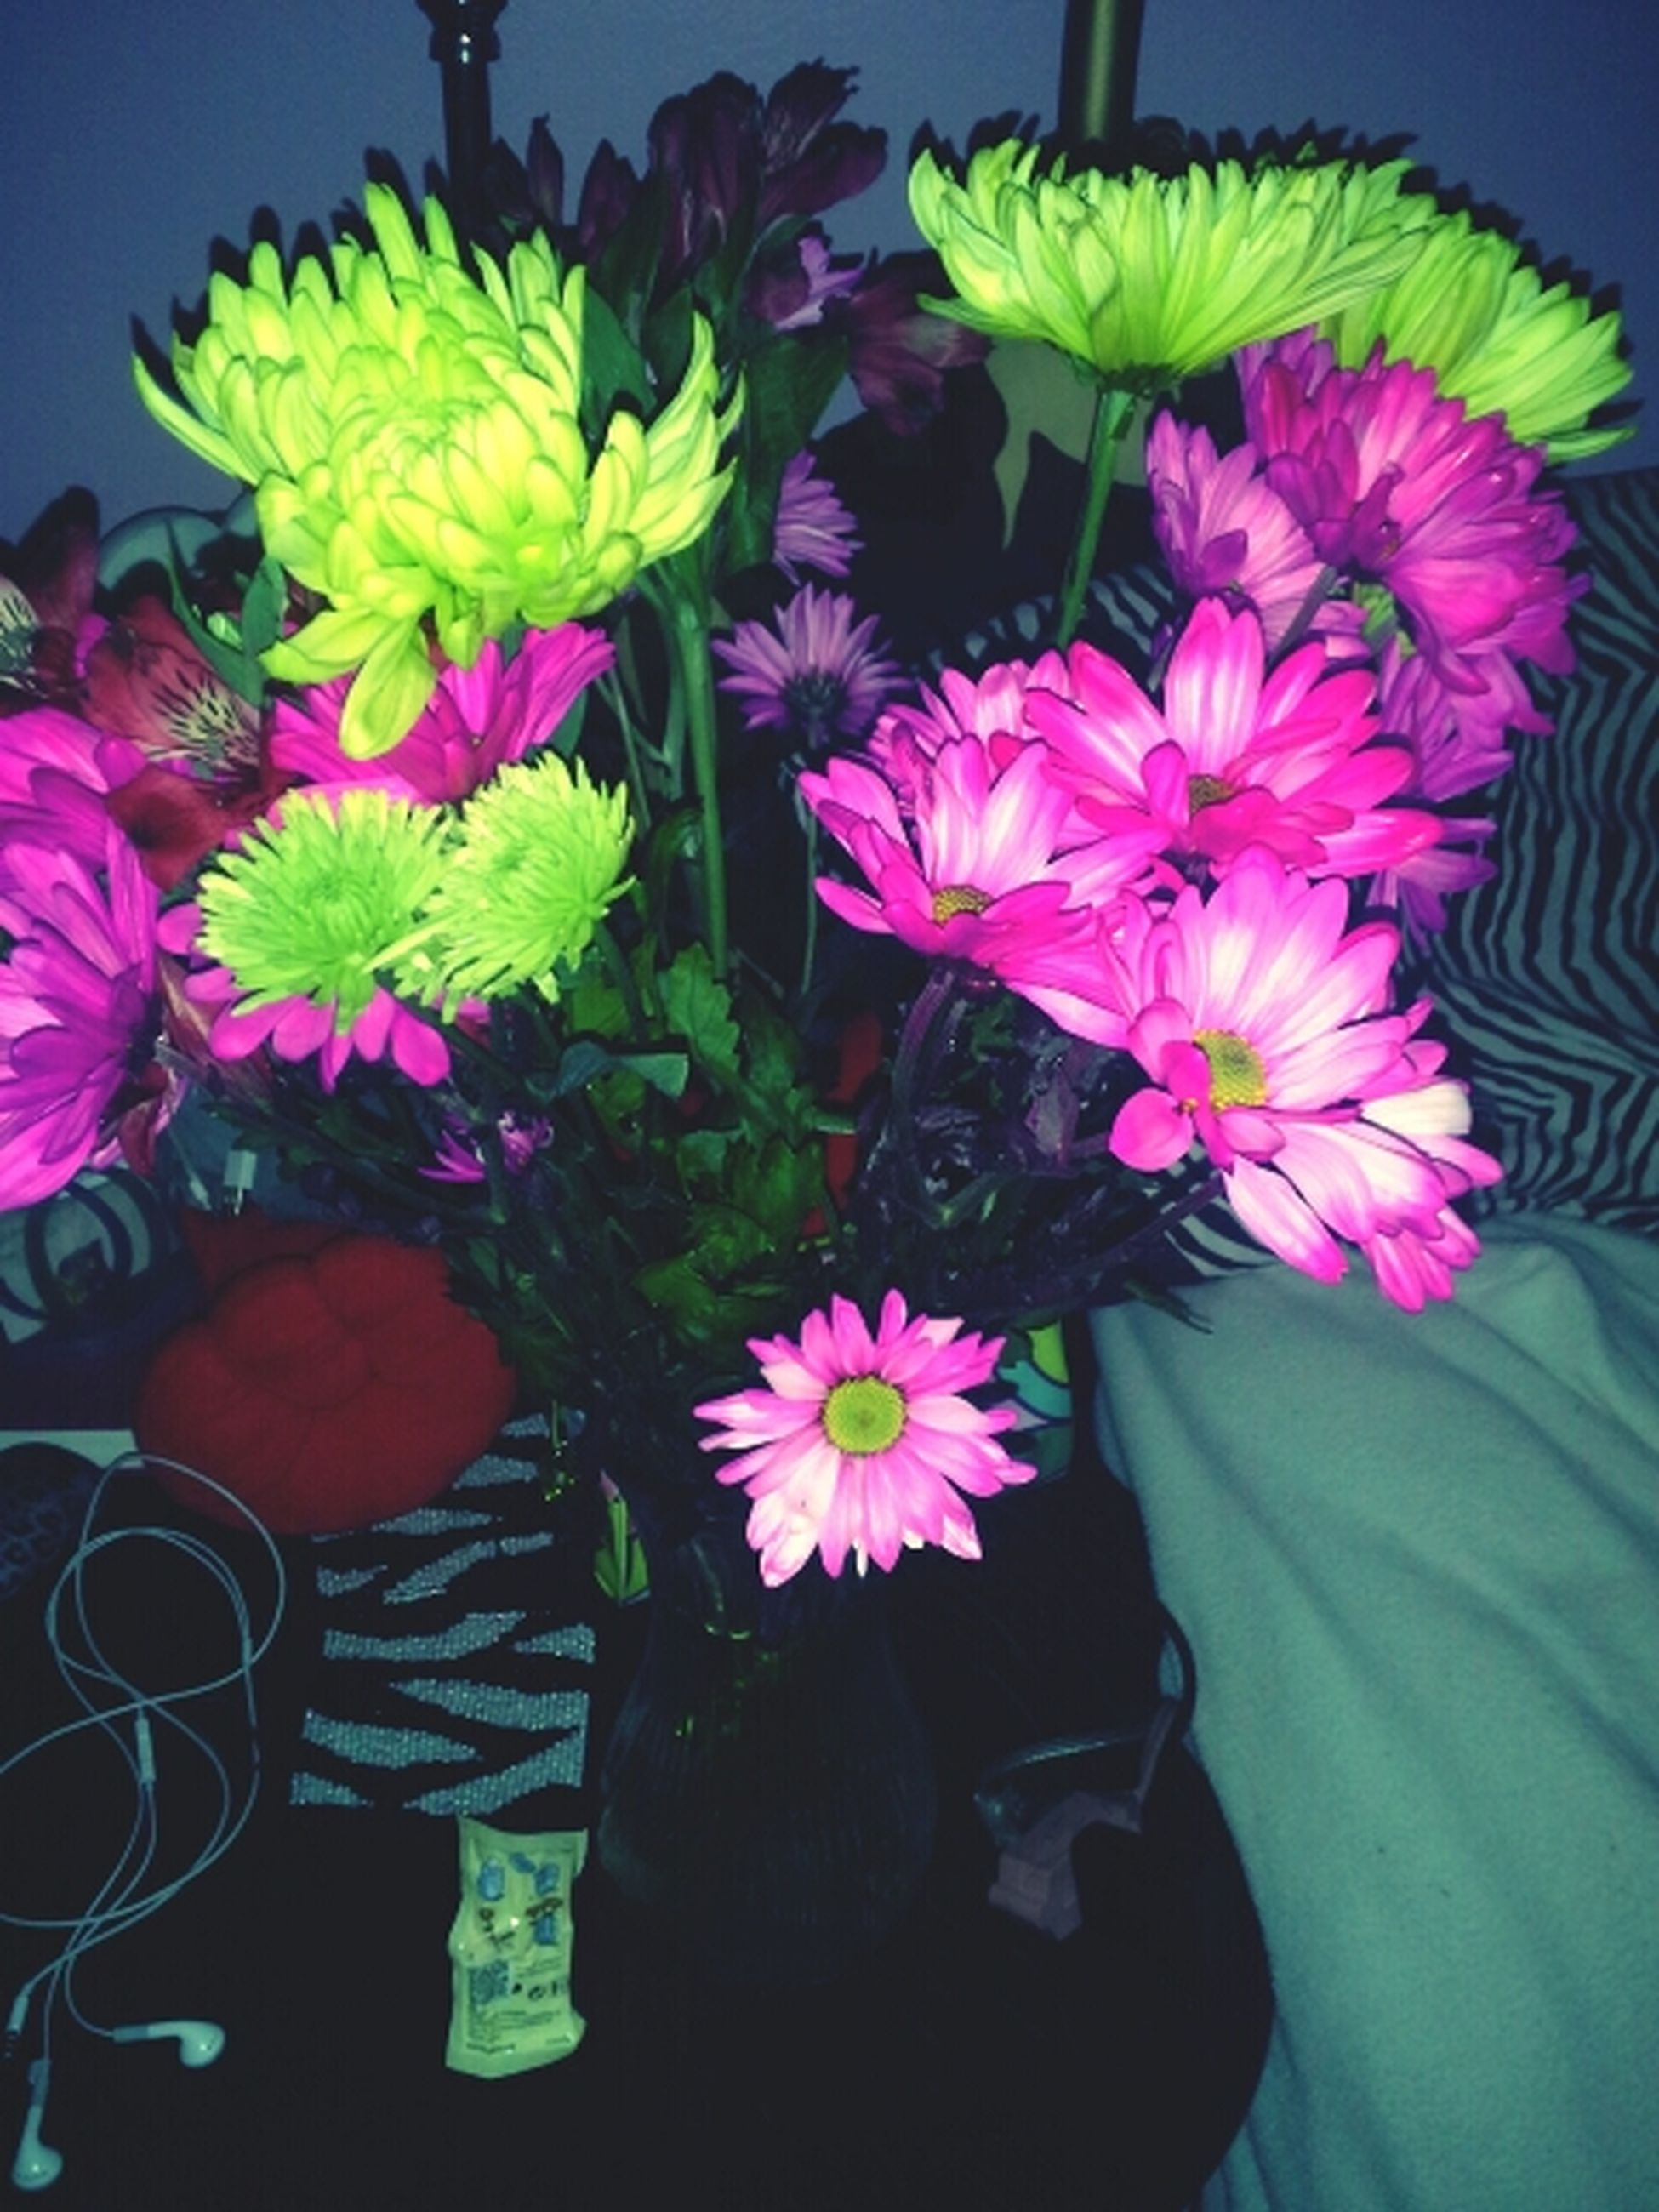 flower, petal, freshness, fragility, flower head, indoors, vase, beauty in nature, plant, leaf, growth, close-up, high angle view, potted plant, multi colored, nature, bunch of flowers, bouquet, flower arrangement, blooming